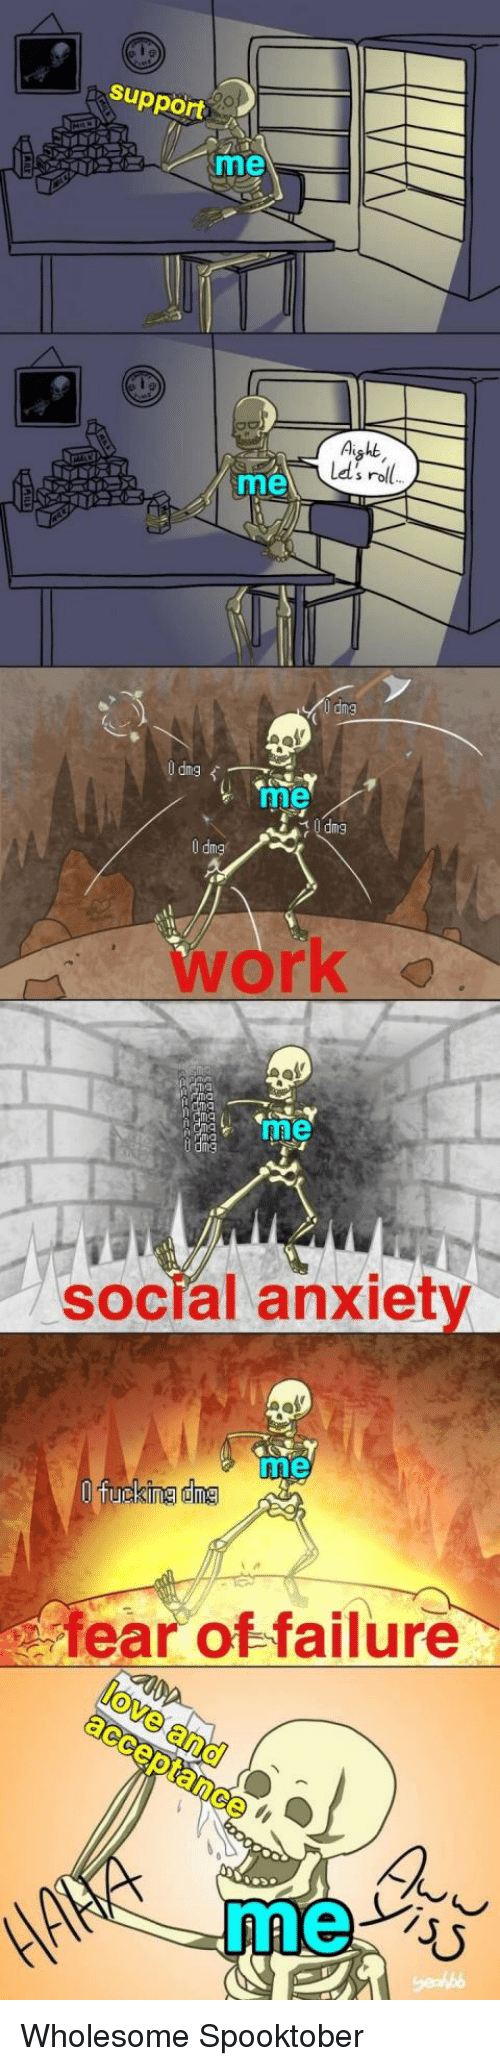 Work, Wholesome, and Failure: support  me  Aight  Ld's roll  me  U dng  ng  me  イ0dng  work  me  n9  social anxiet  me  fear of failure  me Wholesome Spooktober